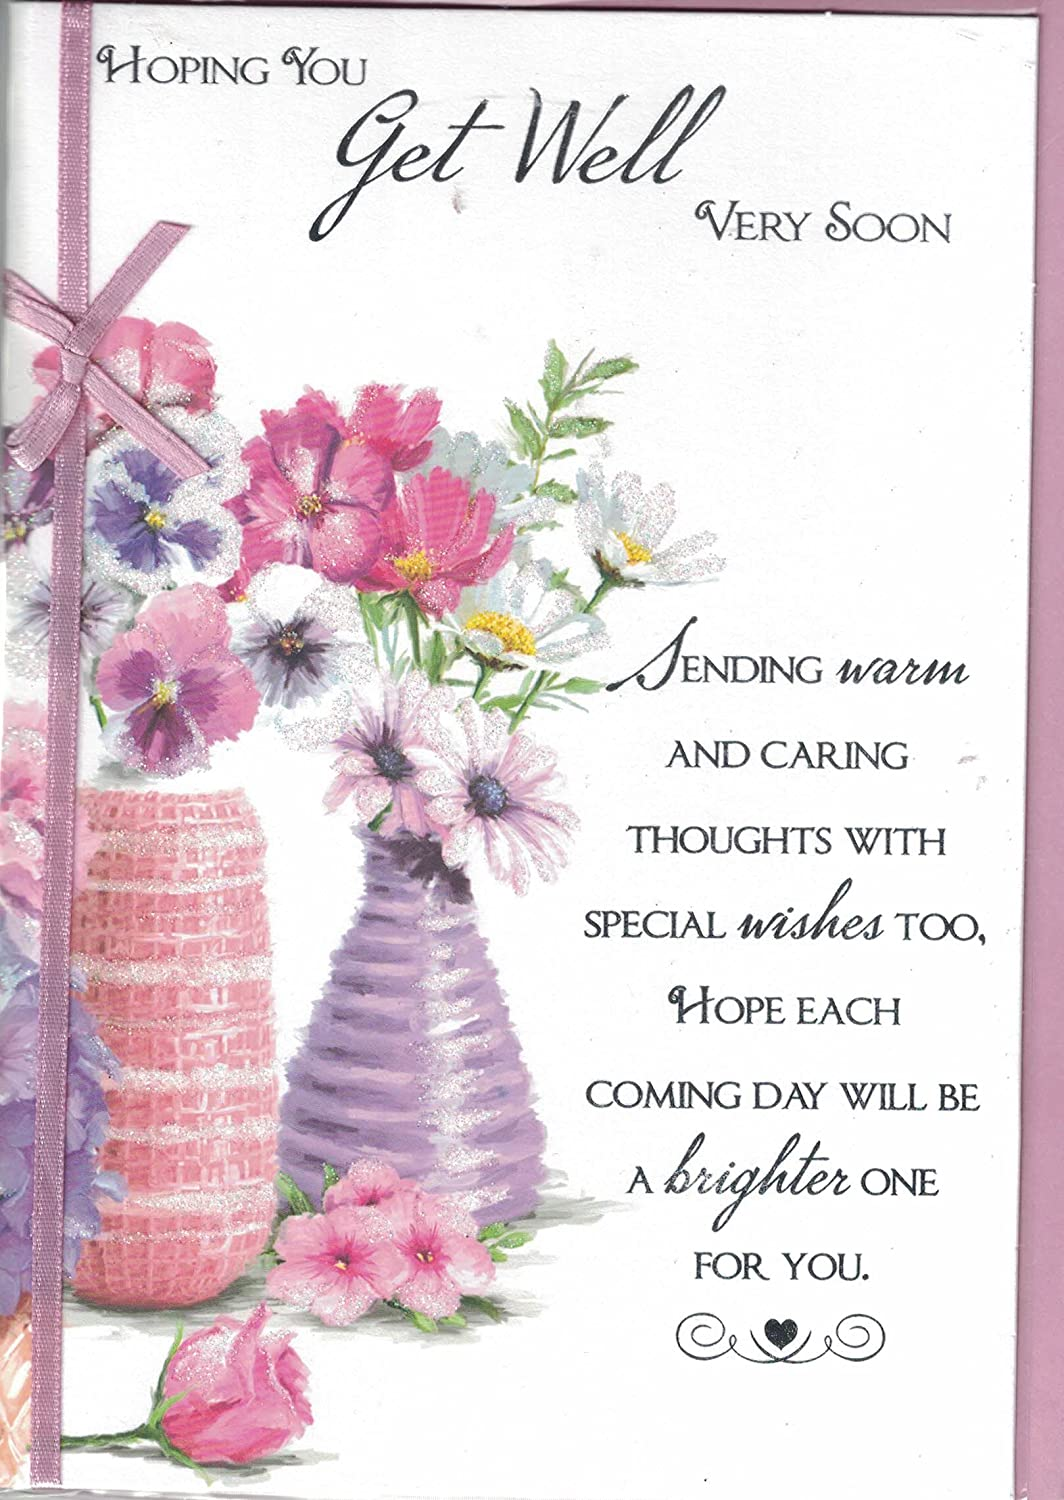 Prelude Get Well Soon Card ~ Hoping You Get Well Very Soon ~ Flower Vase Card Size 20cm x 14cm